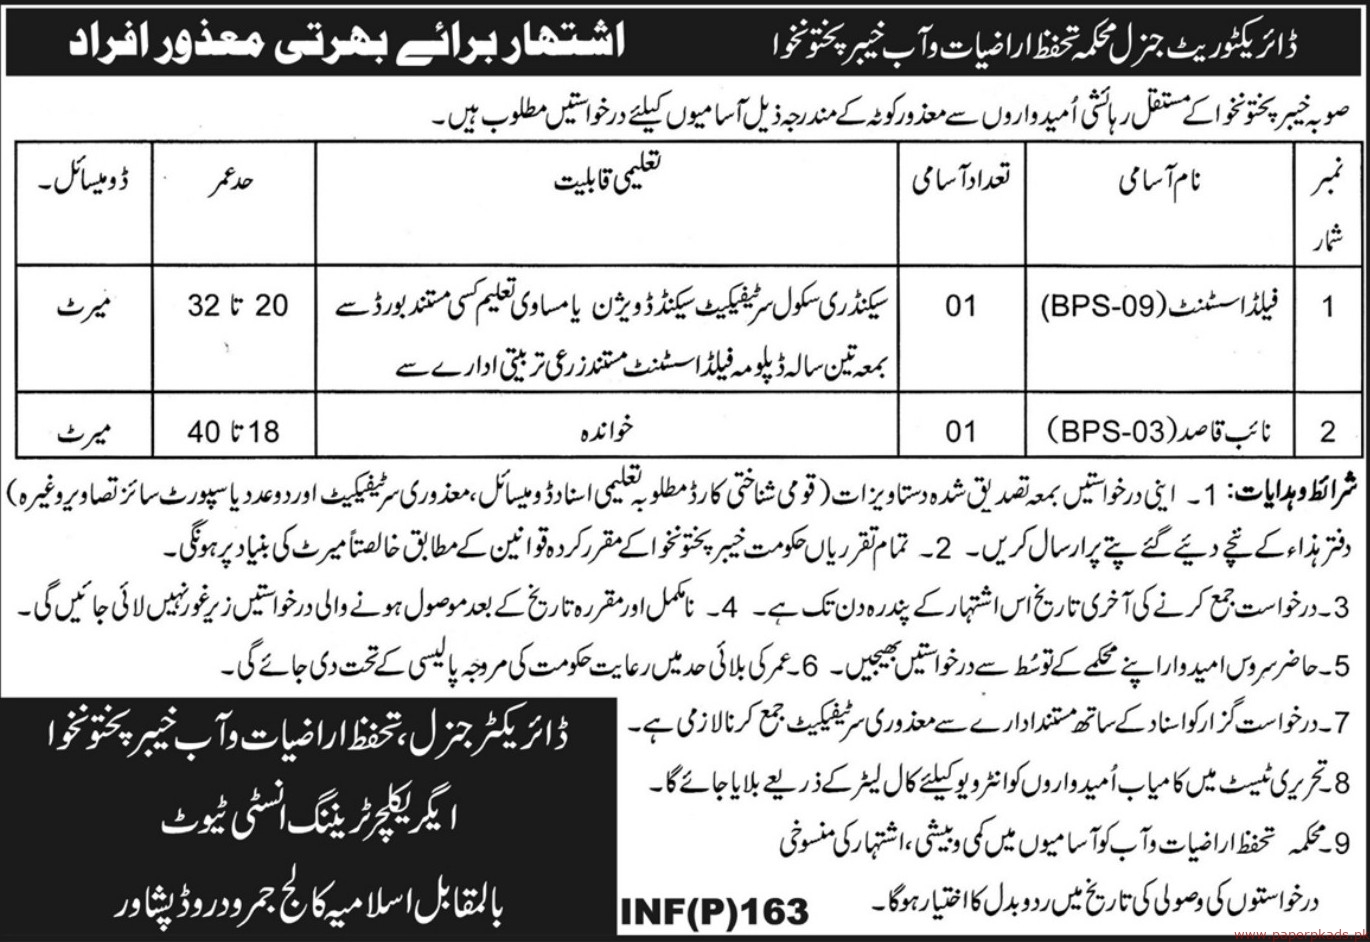 Field Assistant & Naib Qasid Required